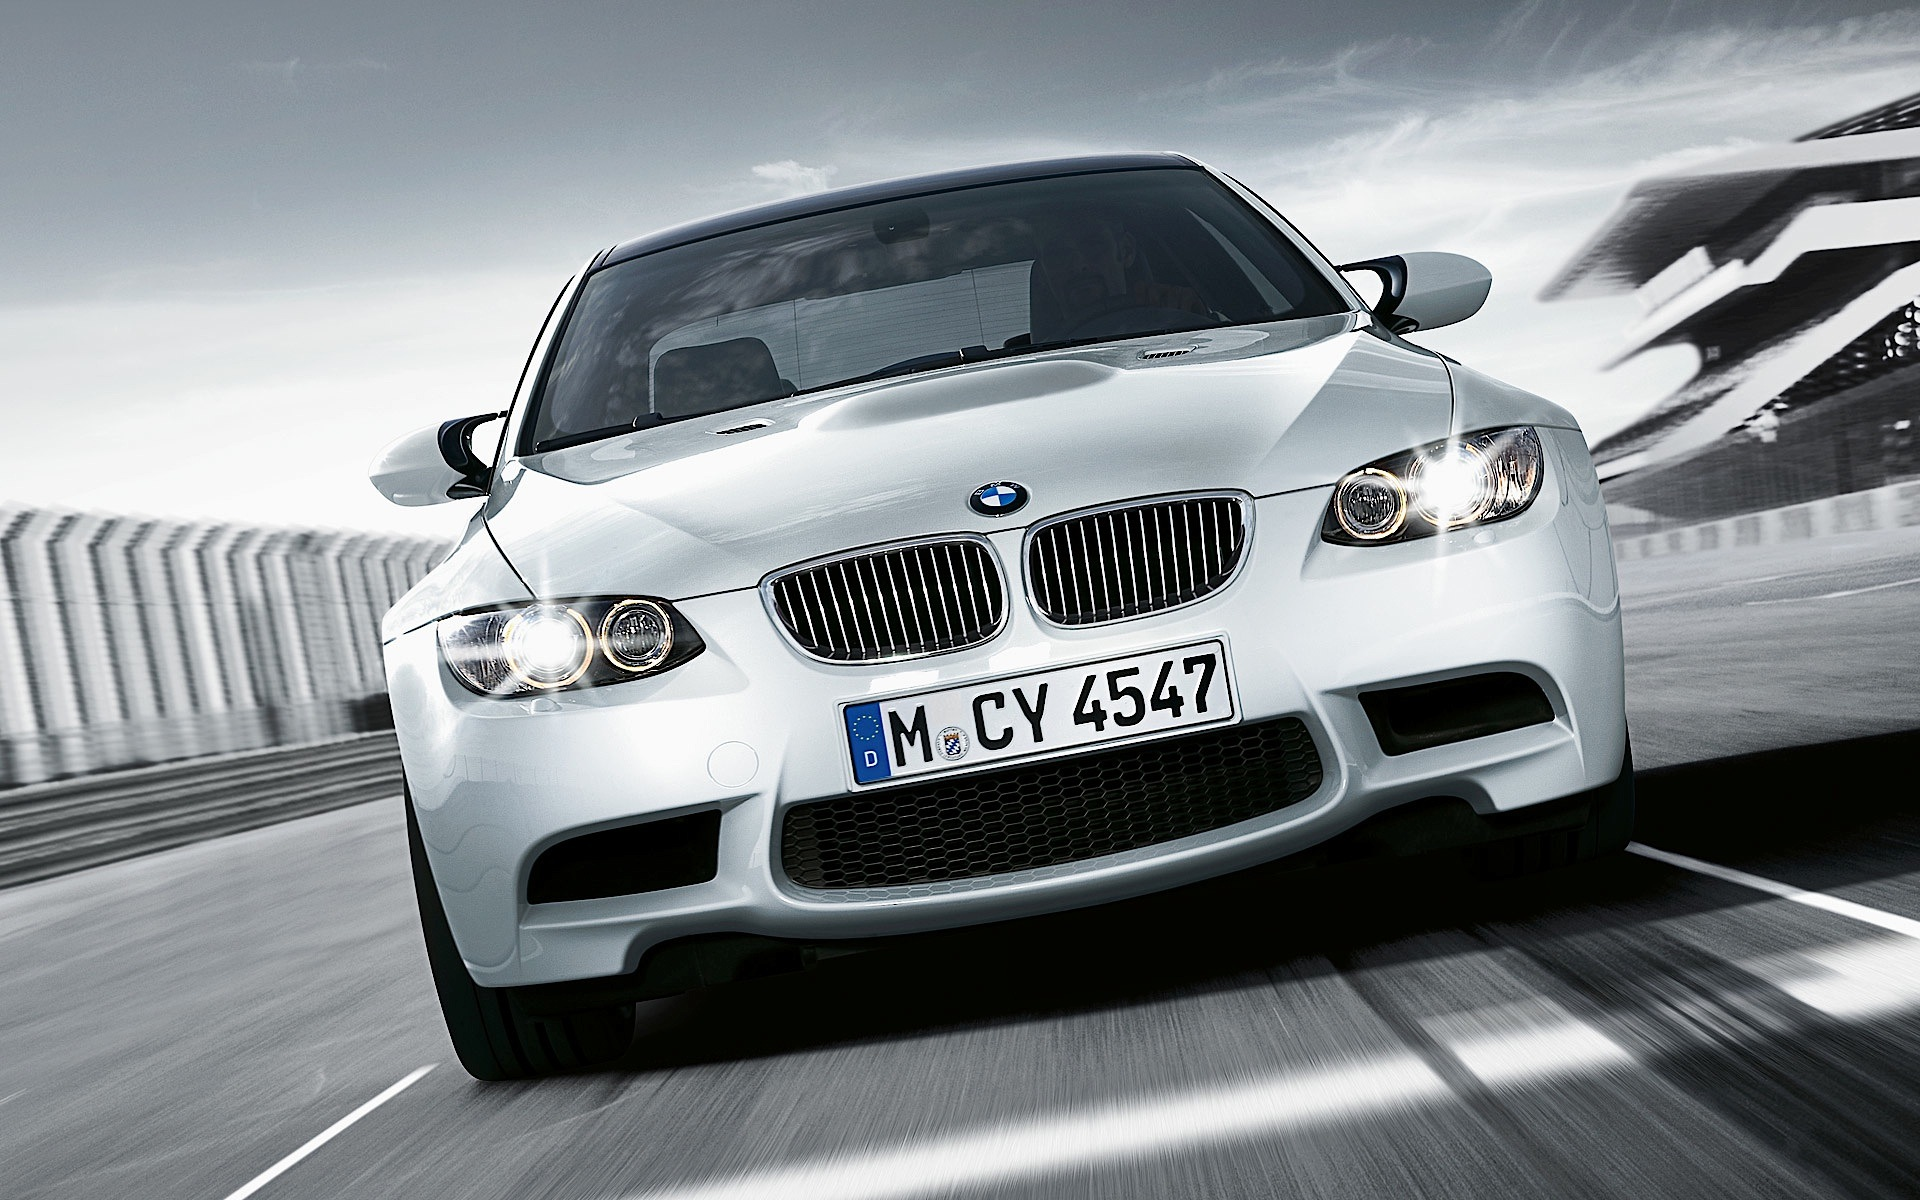 Bmw m3 coupe e92 lci specs 2010 2011 2012 2013 autoevolution - 2013 bmw 335i coupe specs ...